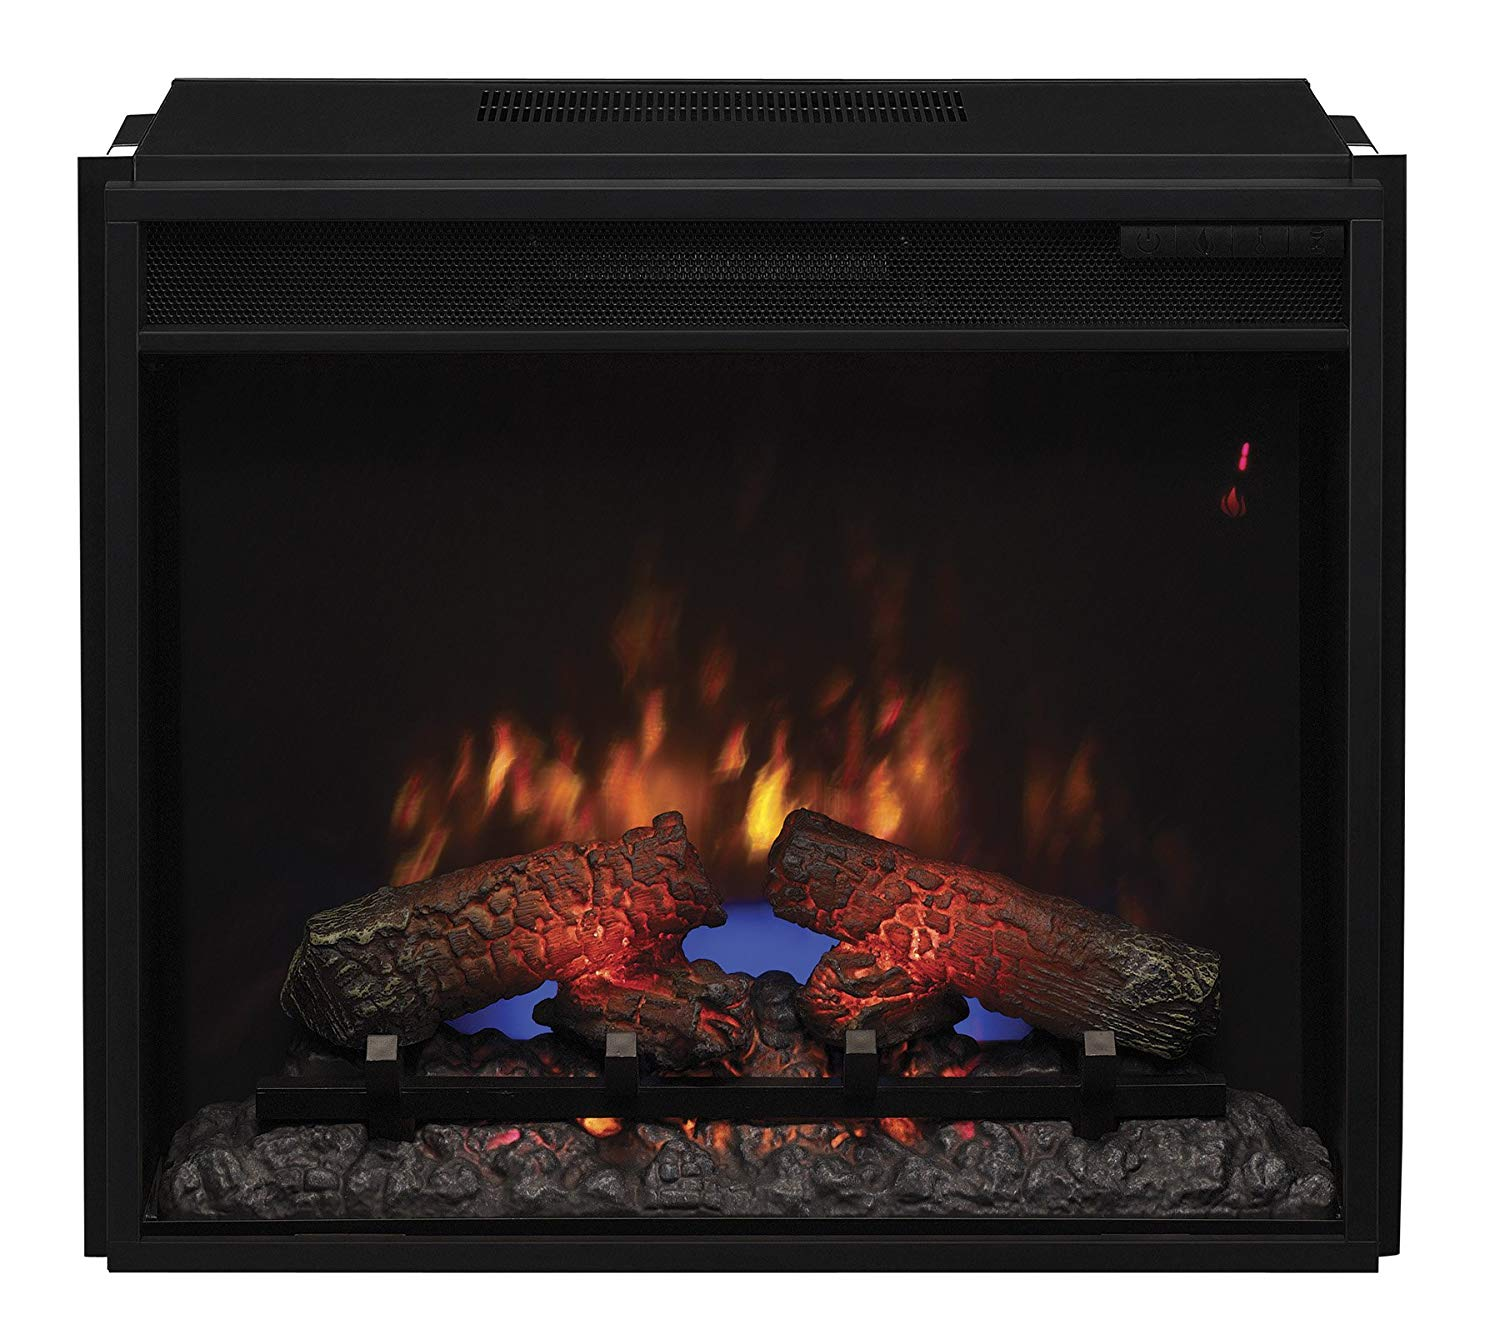 "Duraflame Electric Fireplace Insert Awesome Classicflame 23ef031grp 23"" Electric Fireplace Insert with Safer Plug"